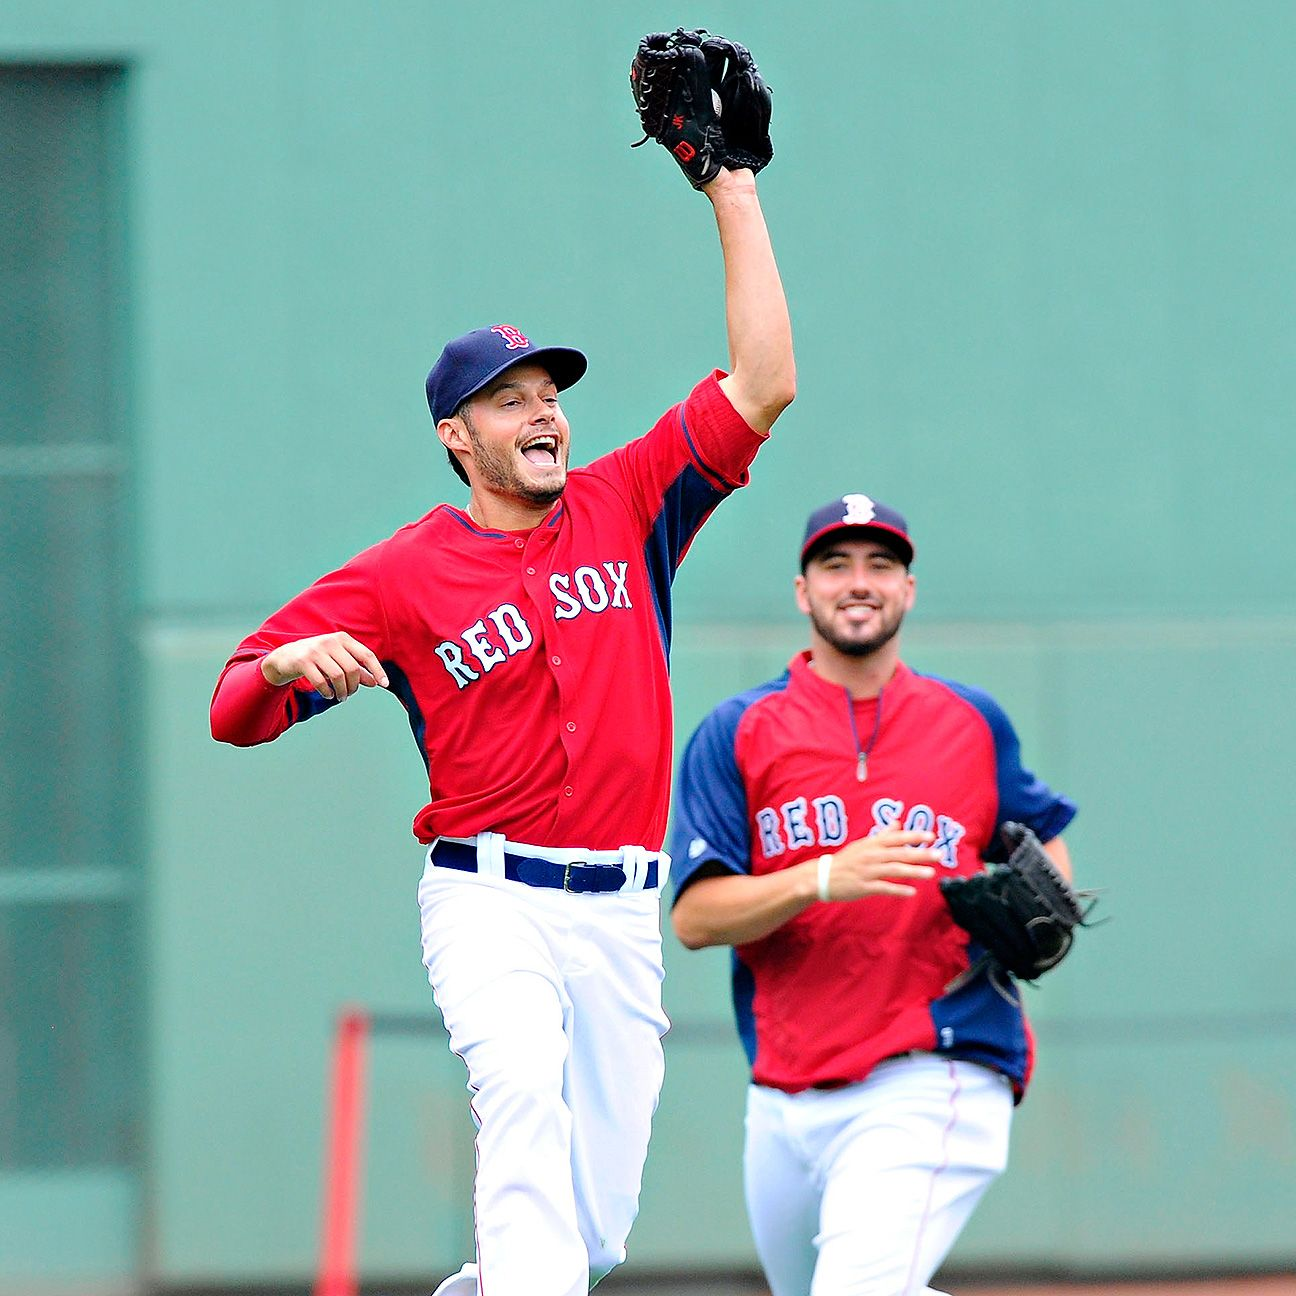 20 Questions: Getting to know Joe Kelly - Boston Red Sox ...